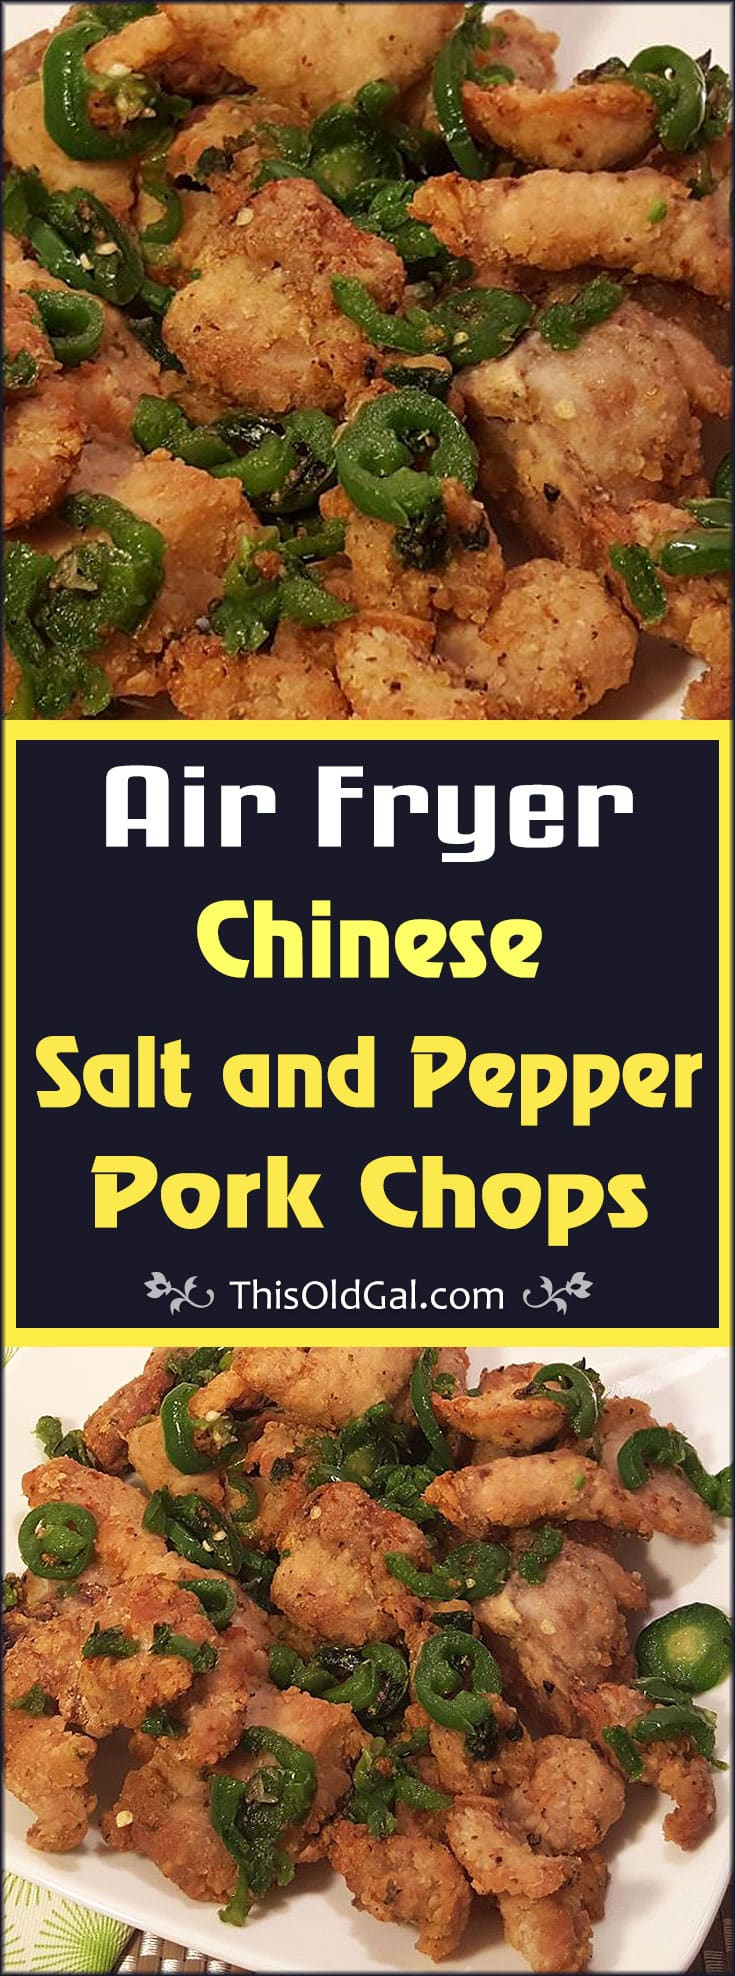 Air Fryer Chinese Salt and Pepper Pork Chops